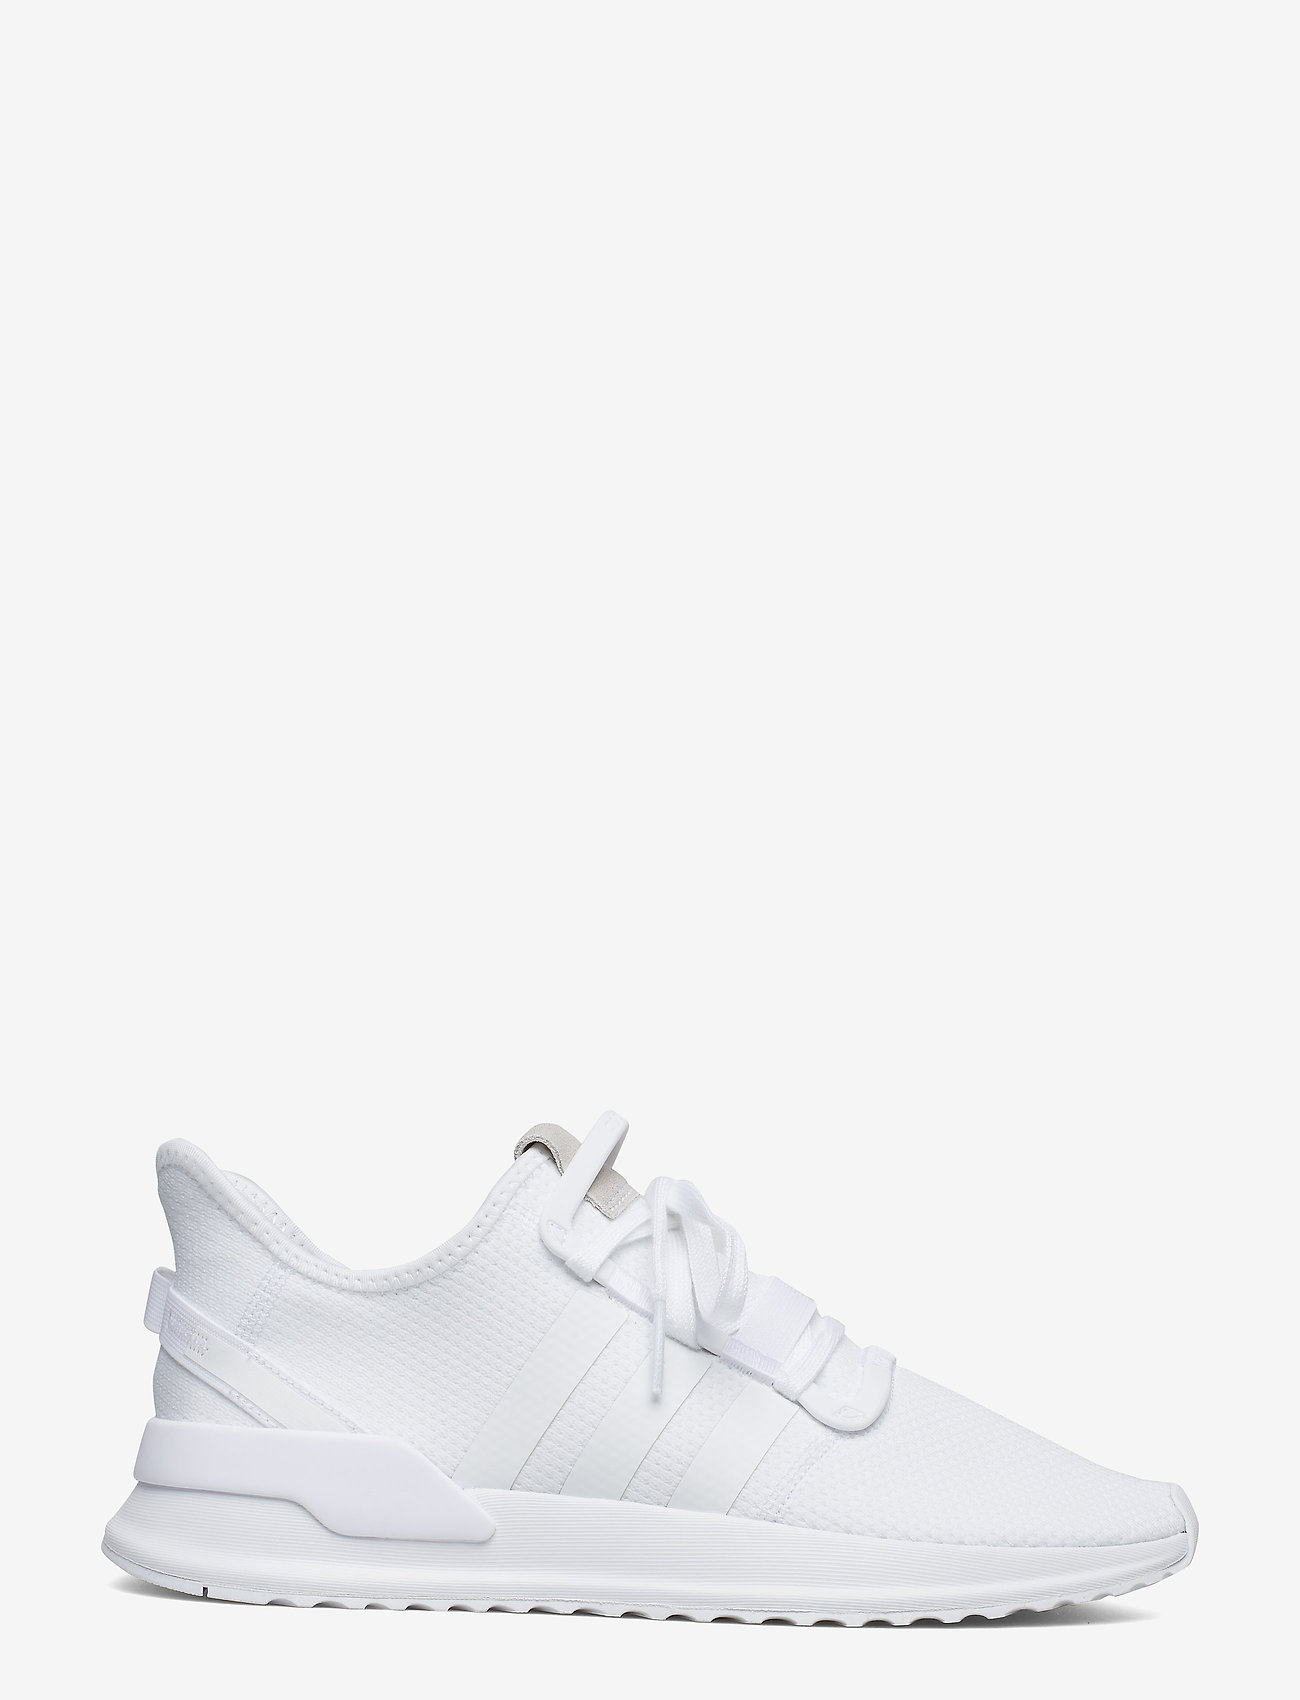 adidas Originals - U_PATH RUN - lav ankel - ftwwht/ftwwht/ftwwht - 1